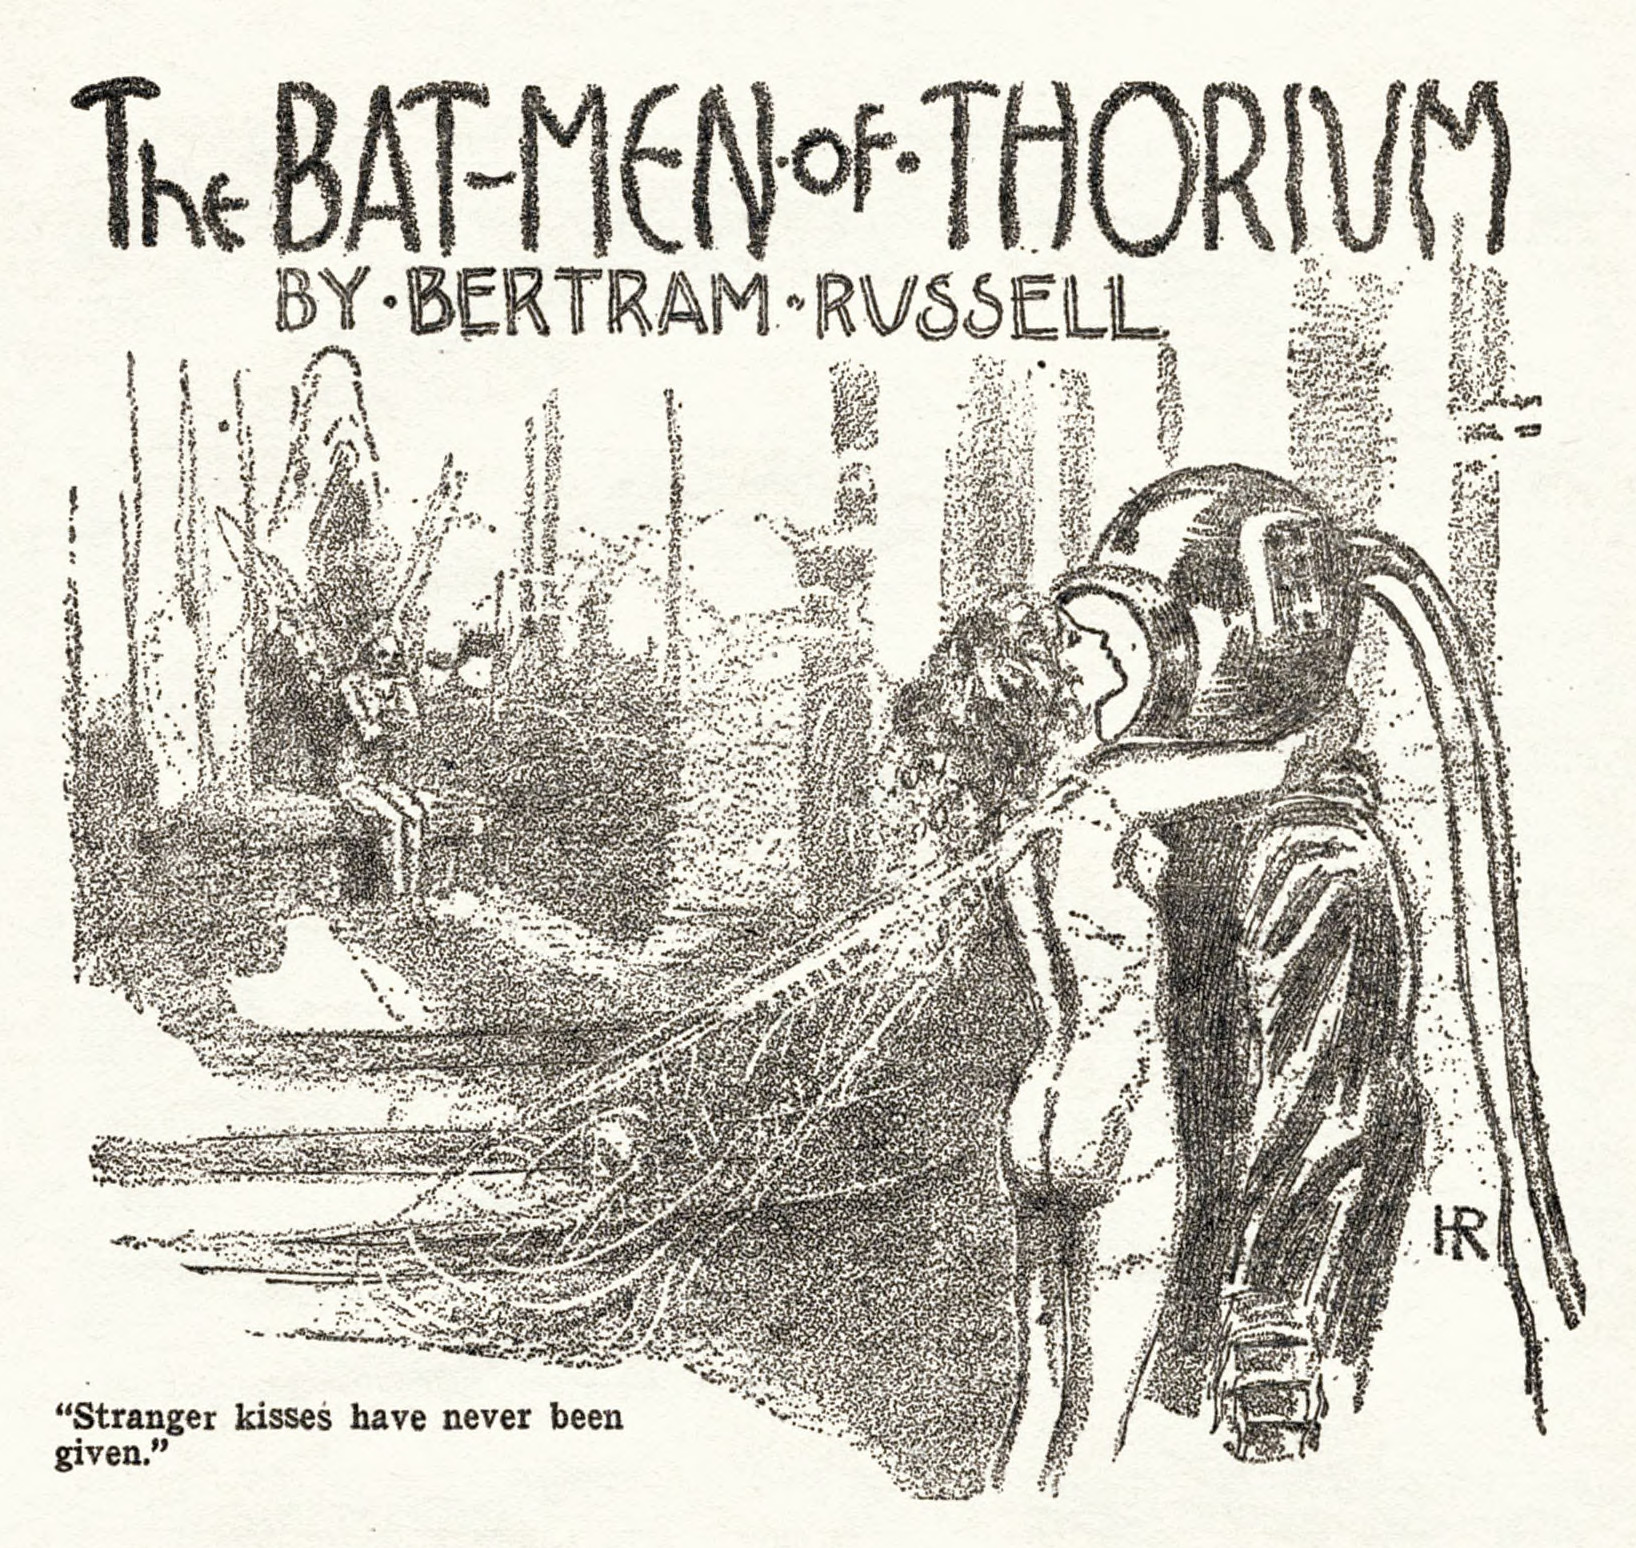 """A story illustration by Hugh Rankin for Bertram Russell's """"The Bat-Men of Thorium,"""" which appeared in the July 1928 issue of Weird Tales."""